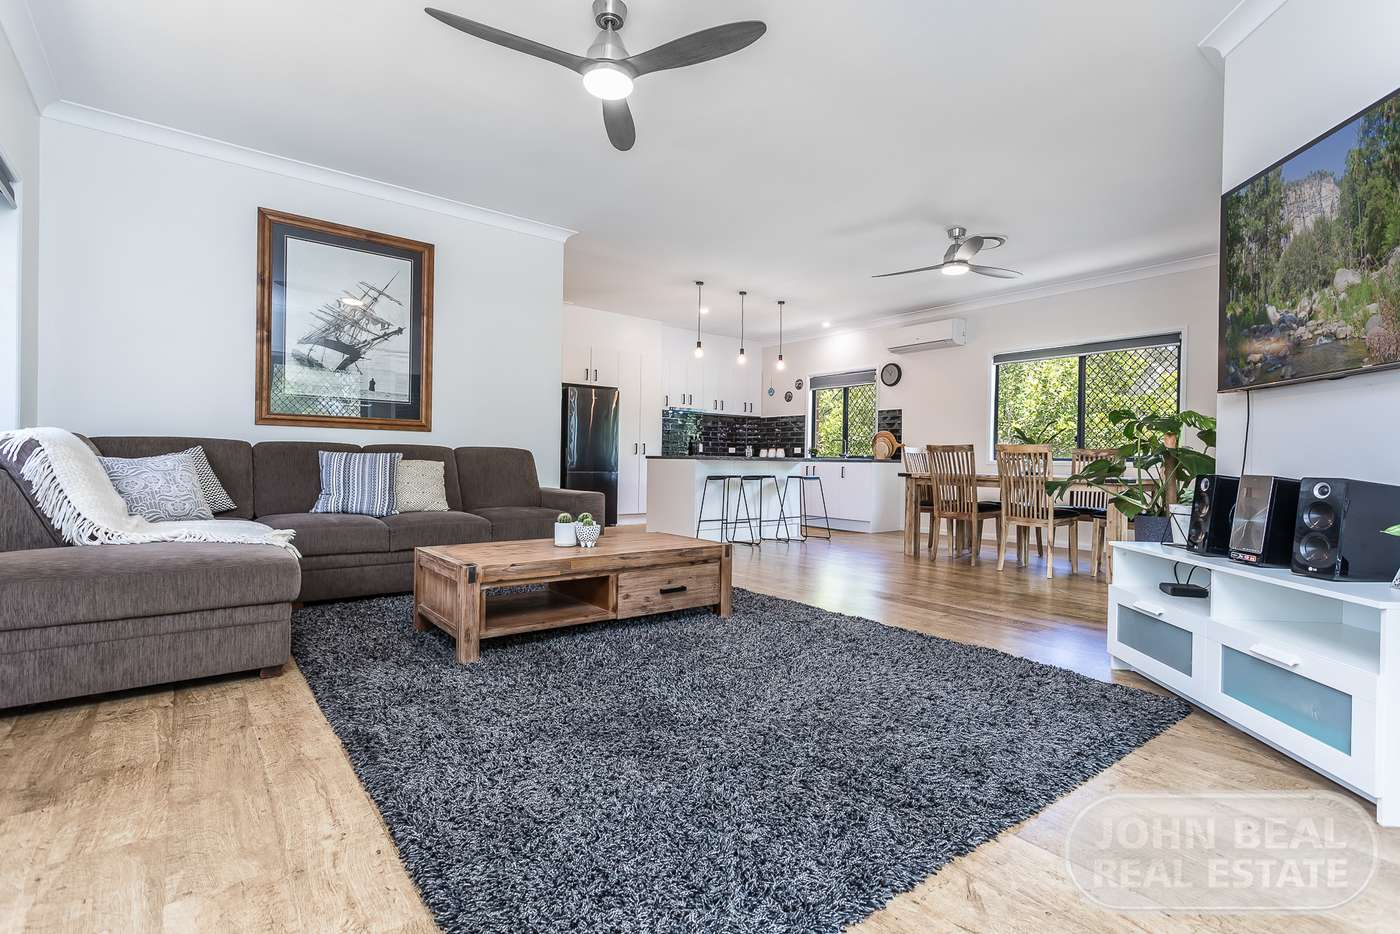 Main view of Homely house listing, 1 Leicester Ct, Kippa-ring QLD 4021